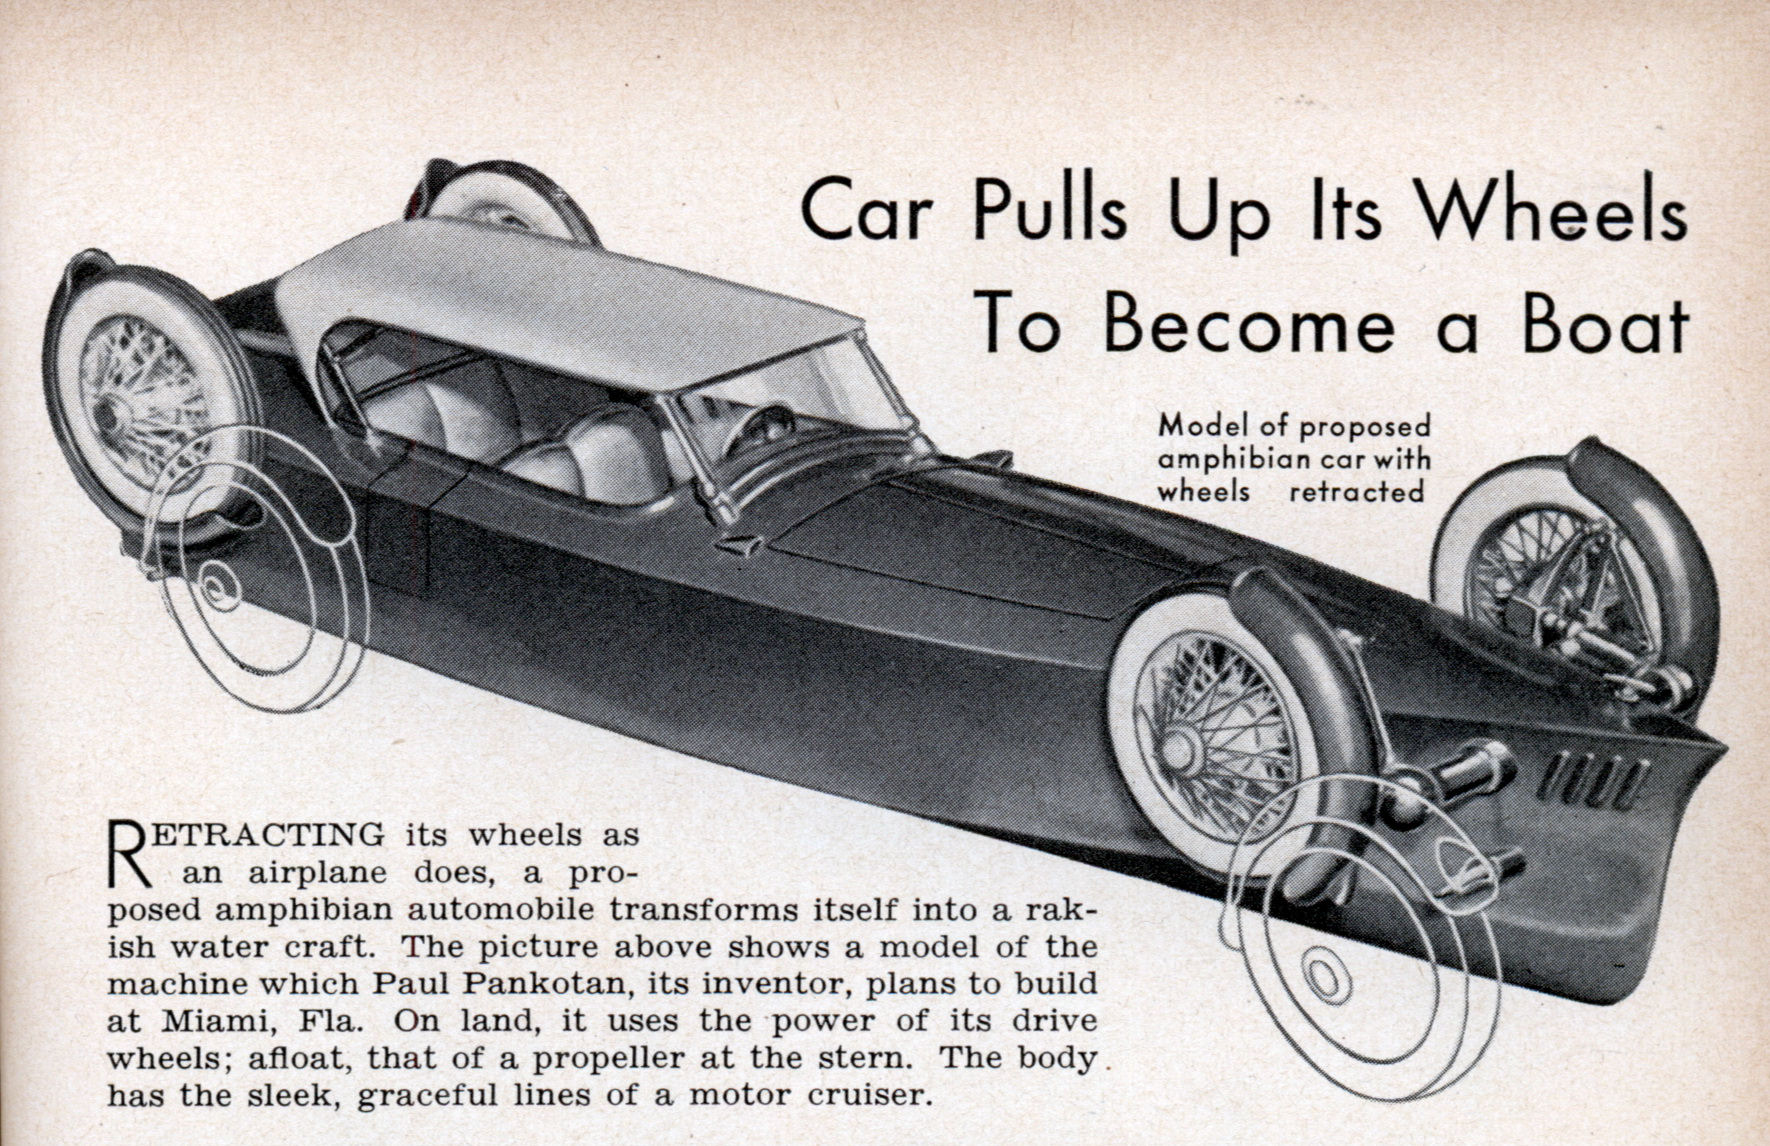 Car Pulls Up Its Wheels To Become a Boat | Modern Mechanix